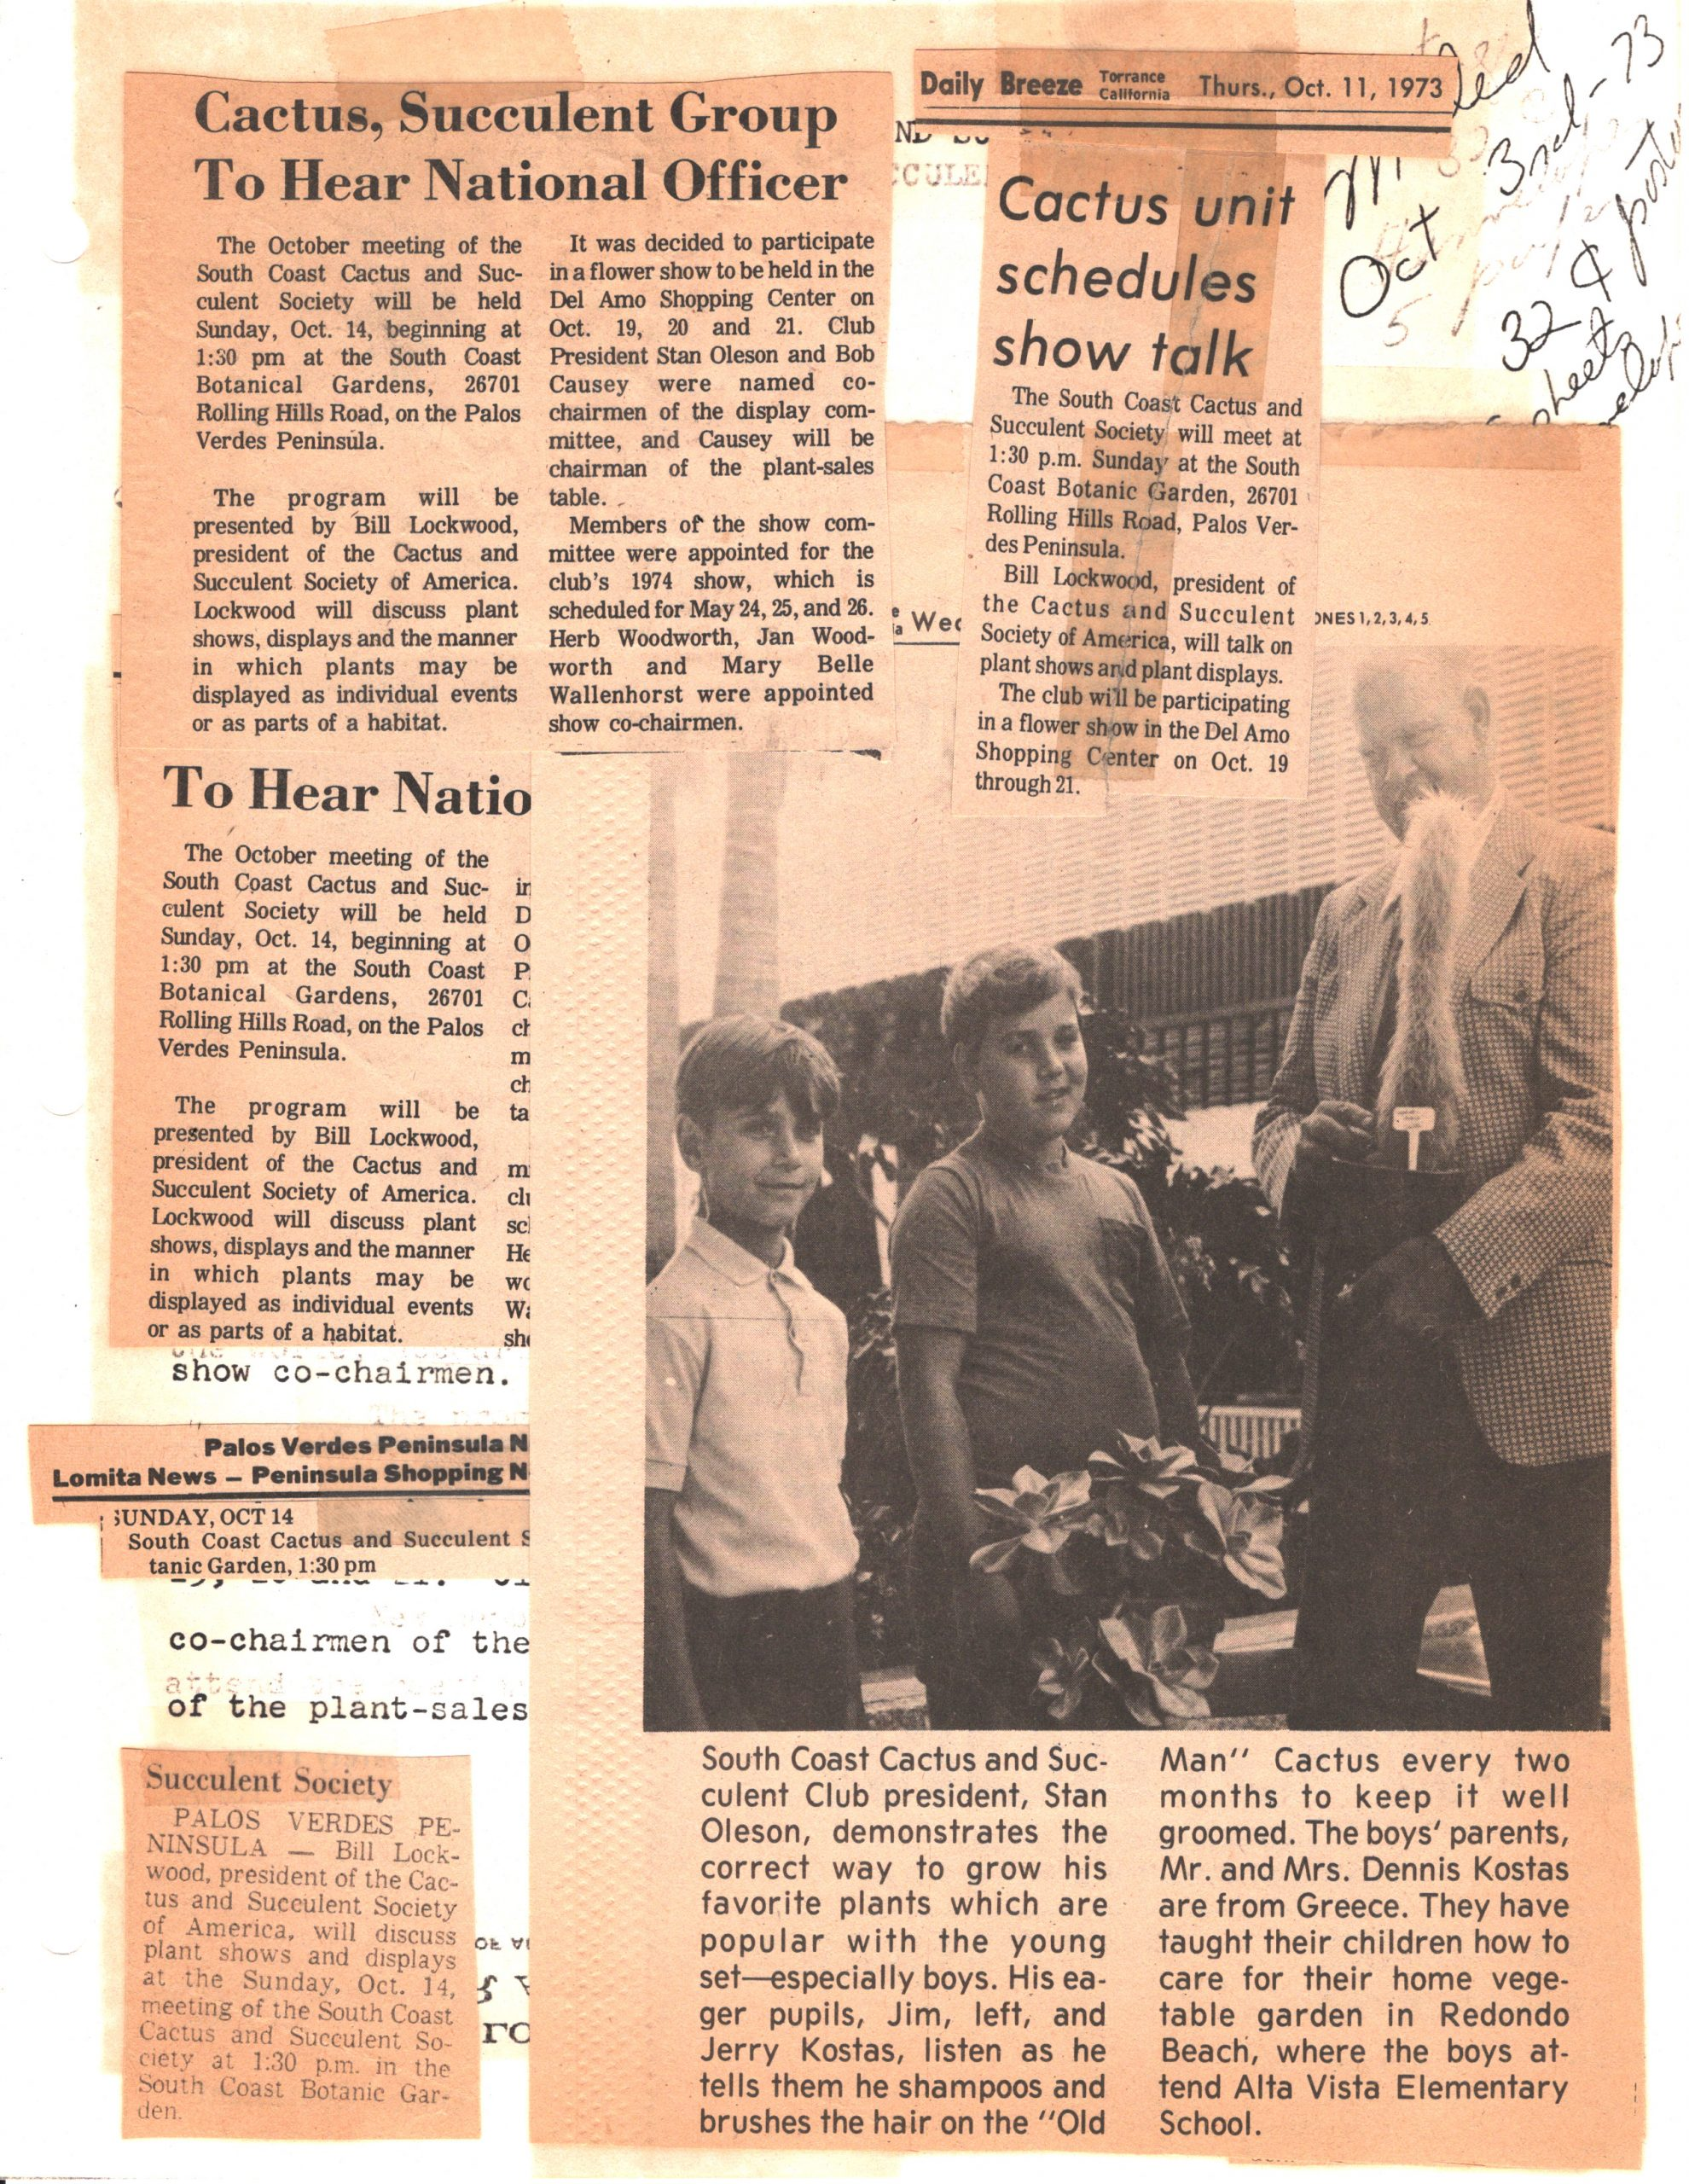 SCCSS-Cuttings-1973-10-11